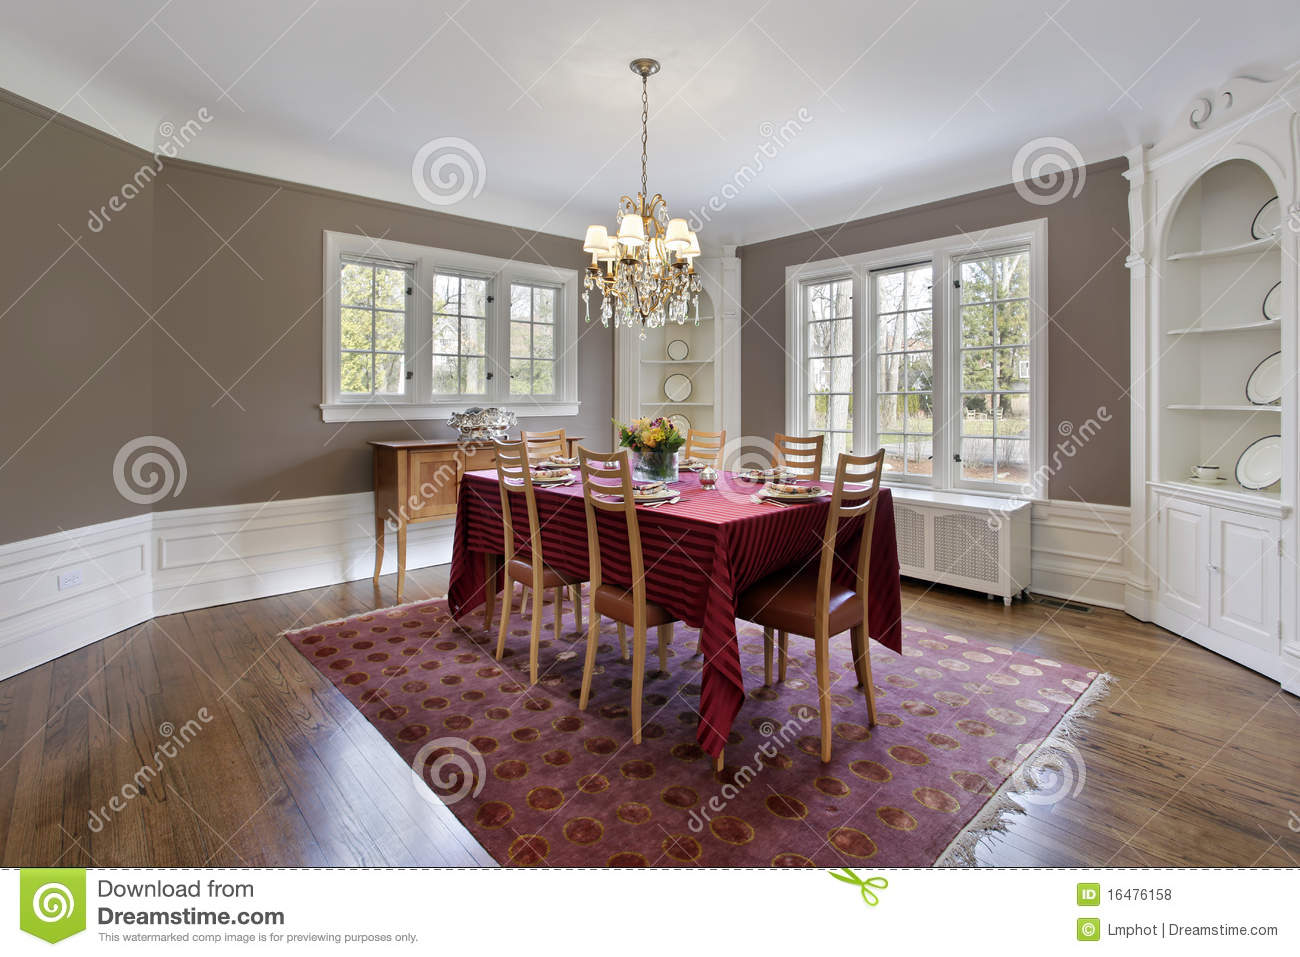 Dining Room With Built in Cabinets Royalty Free Stock